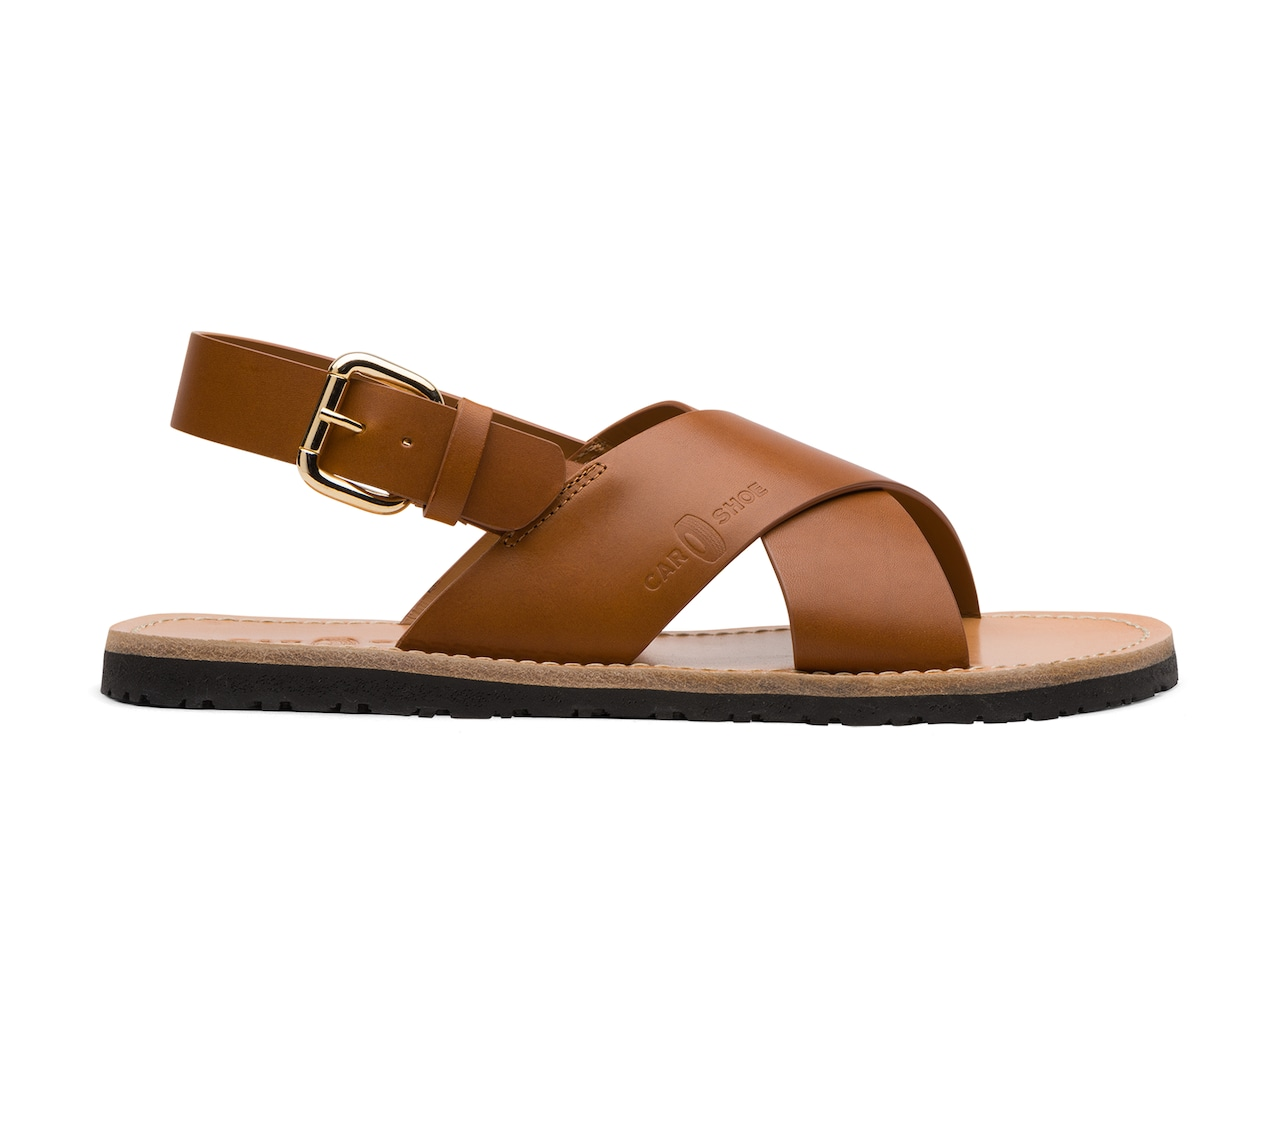 SANDALS IN LEATHER BROWN